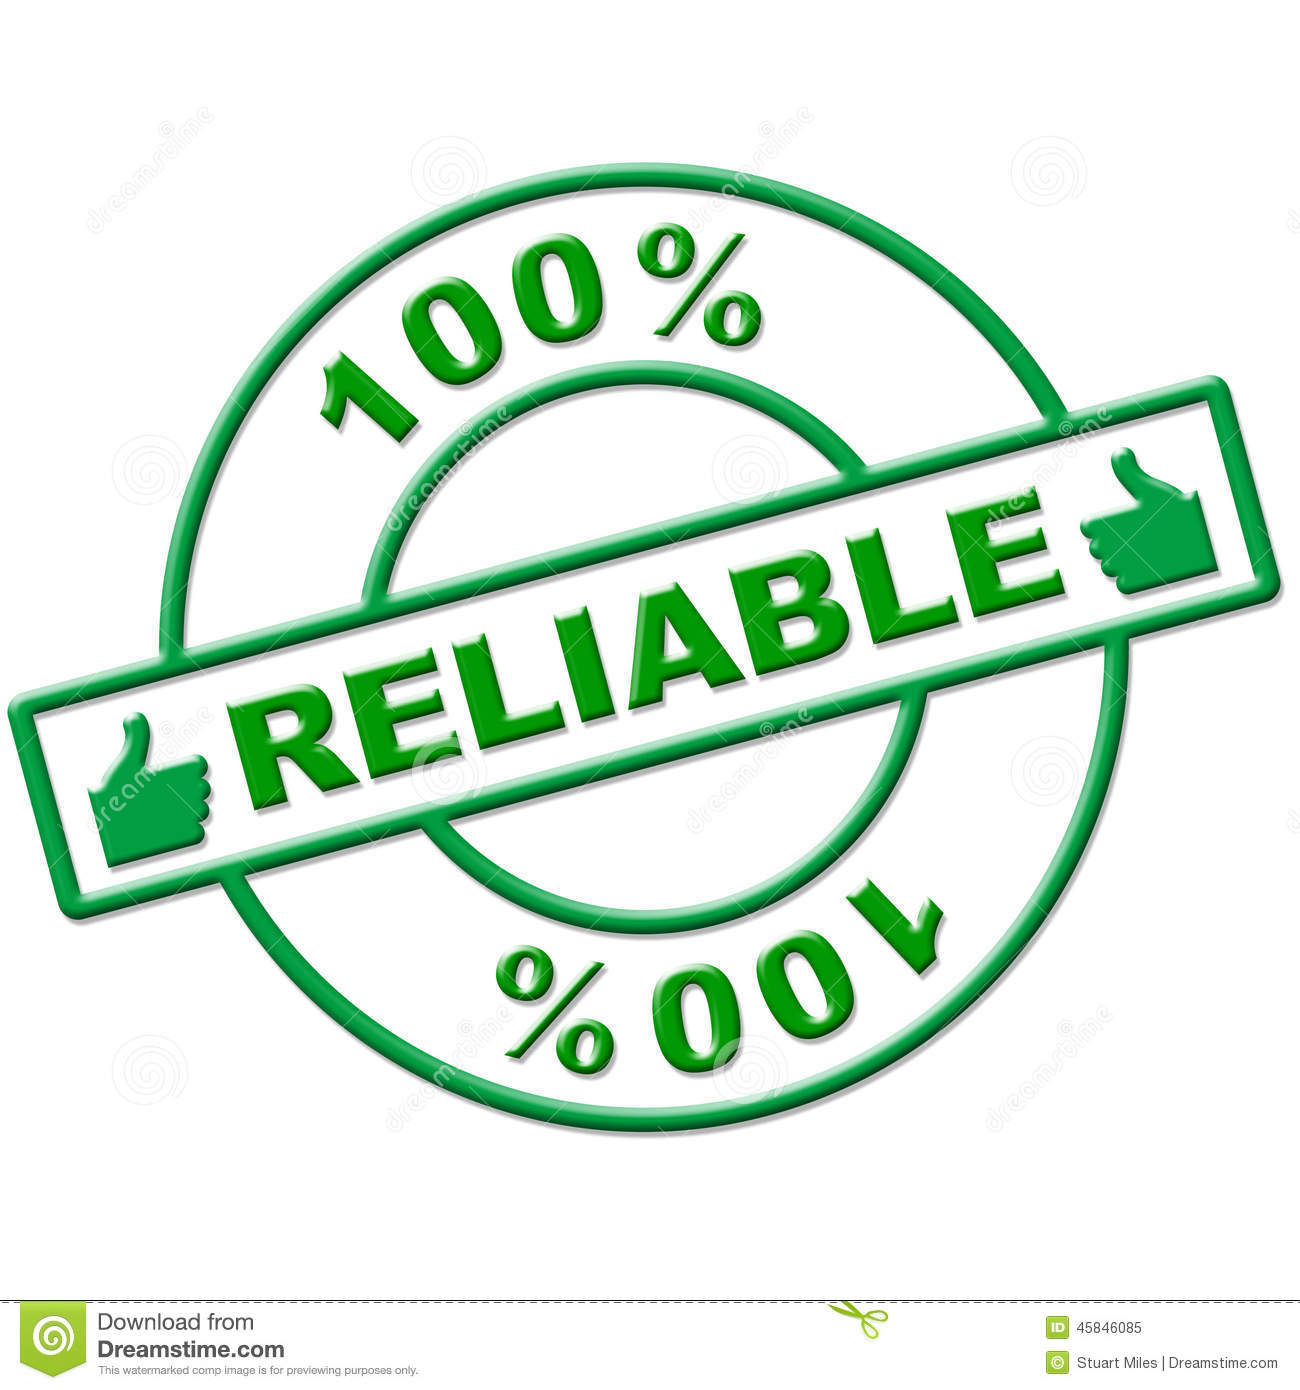 Hundred Percent Reliable Means Absolute Depend And Relying Stock.